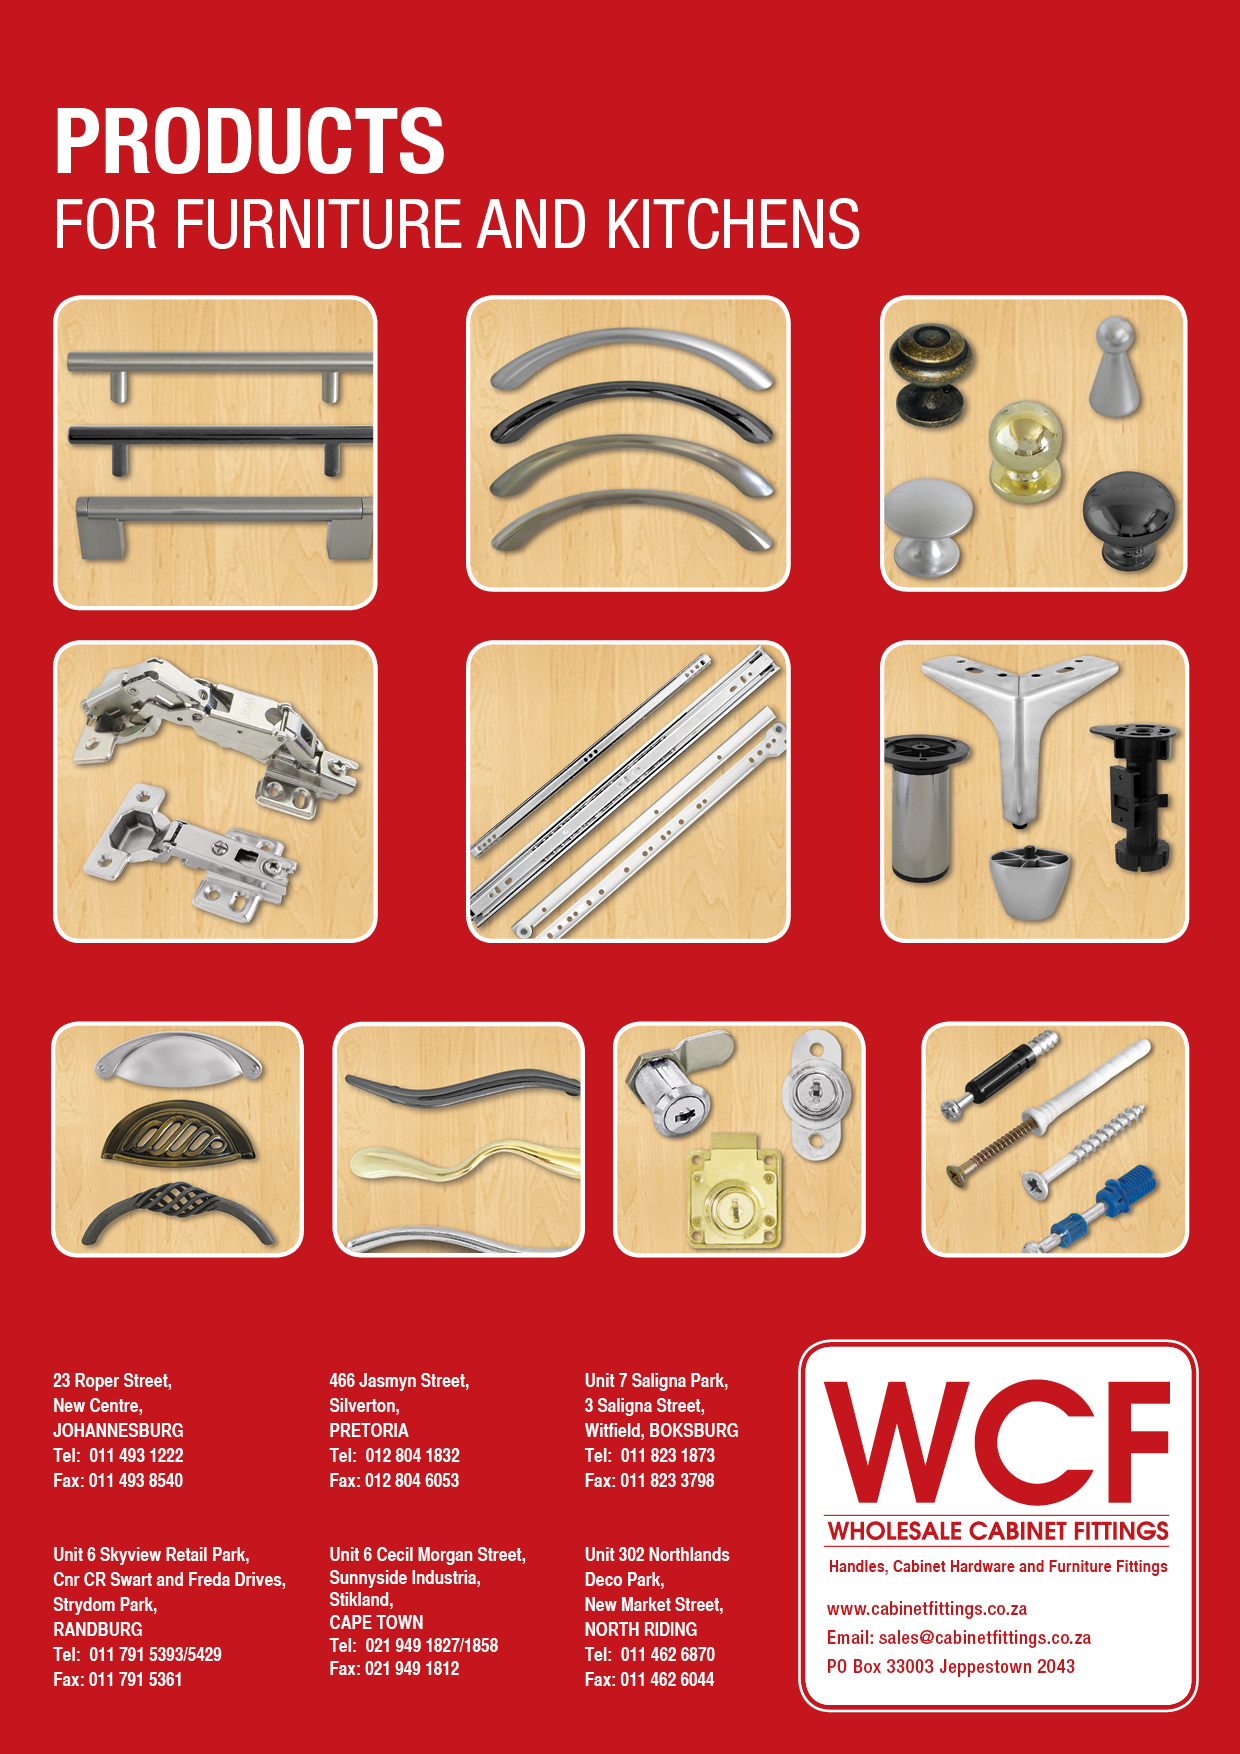 Wholesale Cabinet Fittings